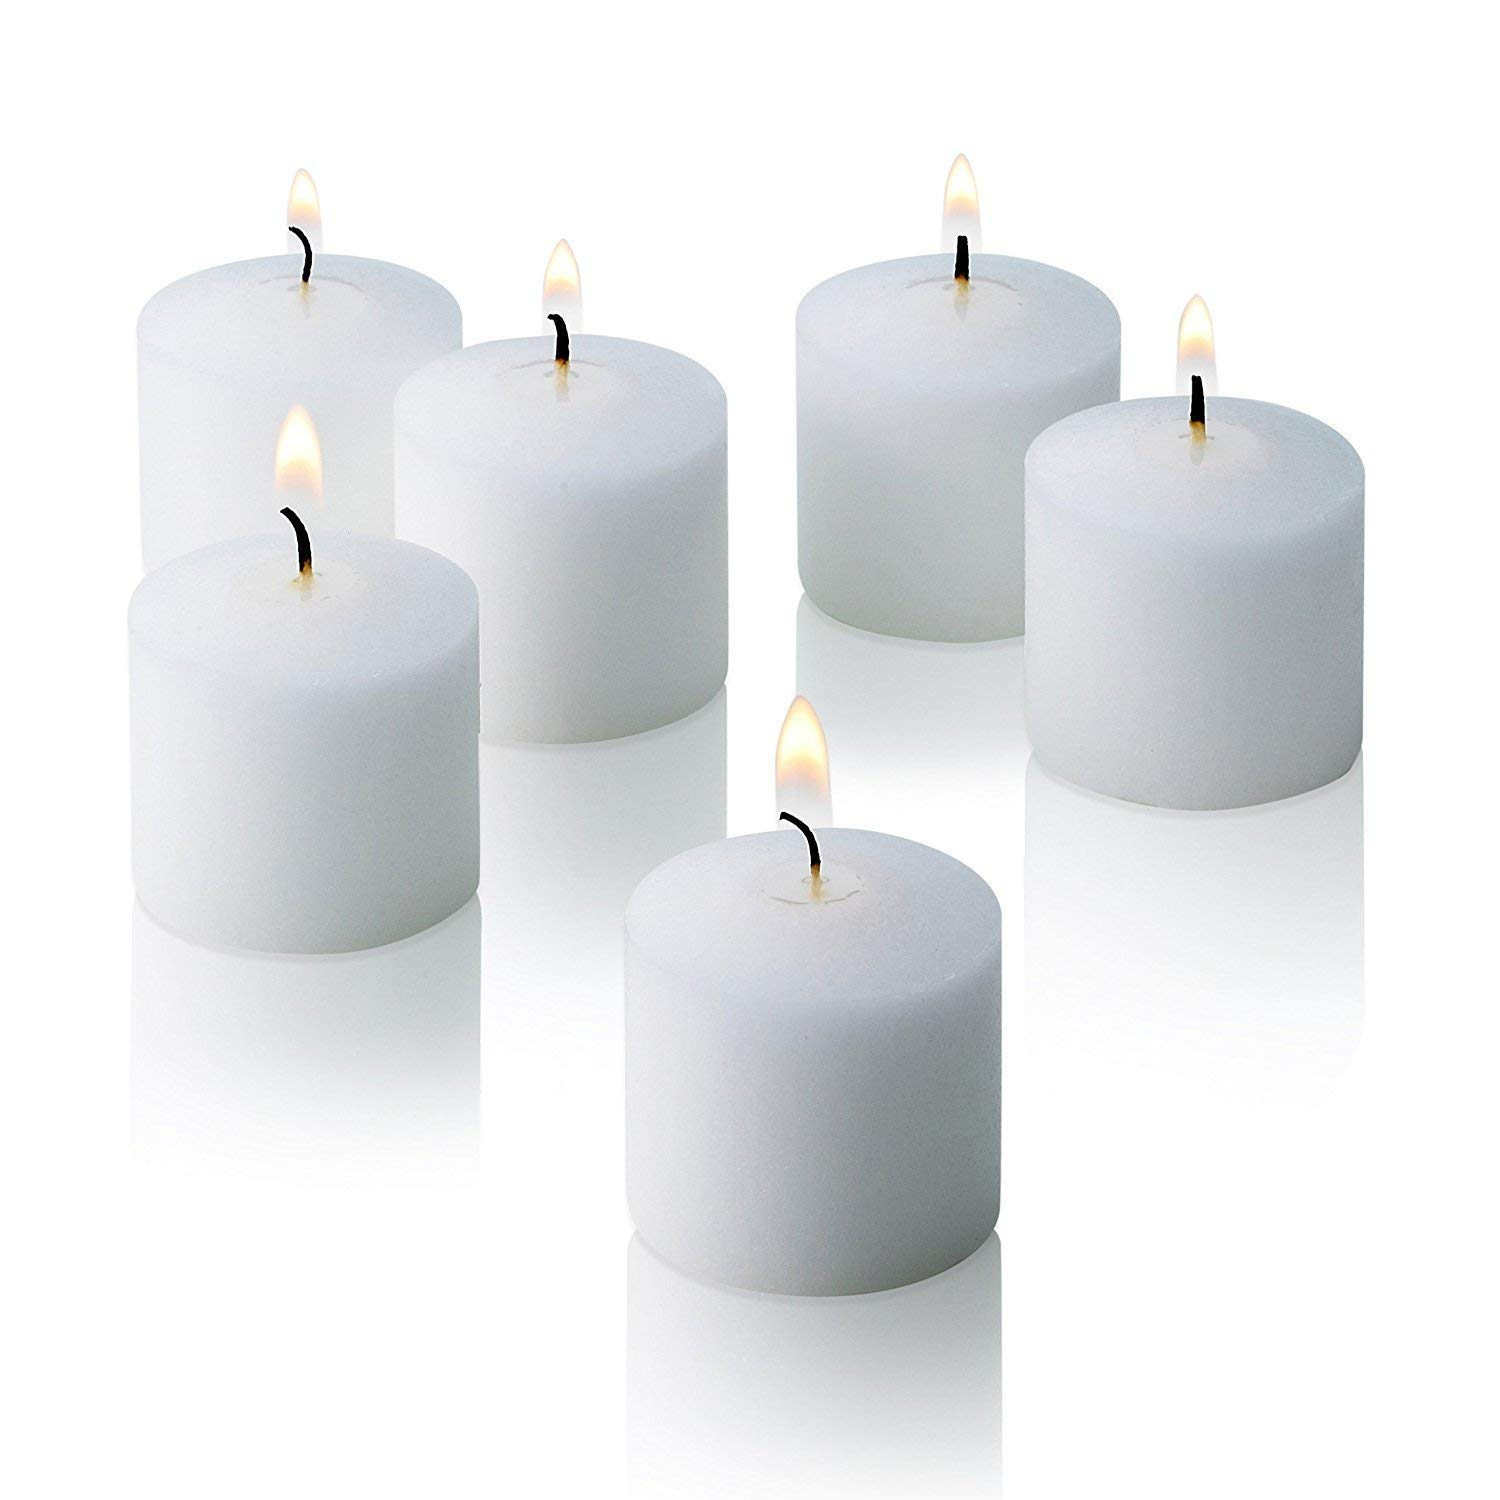 White Votive Candles - Box of 72 Unscented Candles - 10 Hour Burn Time - Bulk Candles for Weddings, Parties, Spas and Decorations by Light In The Dark